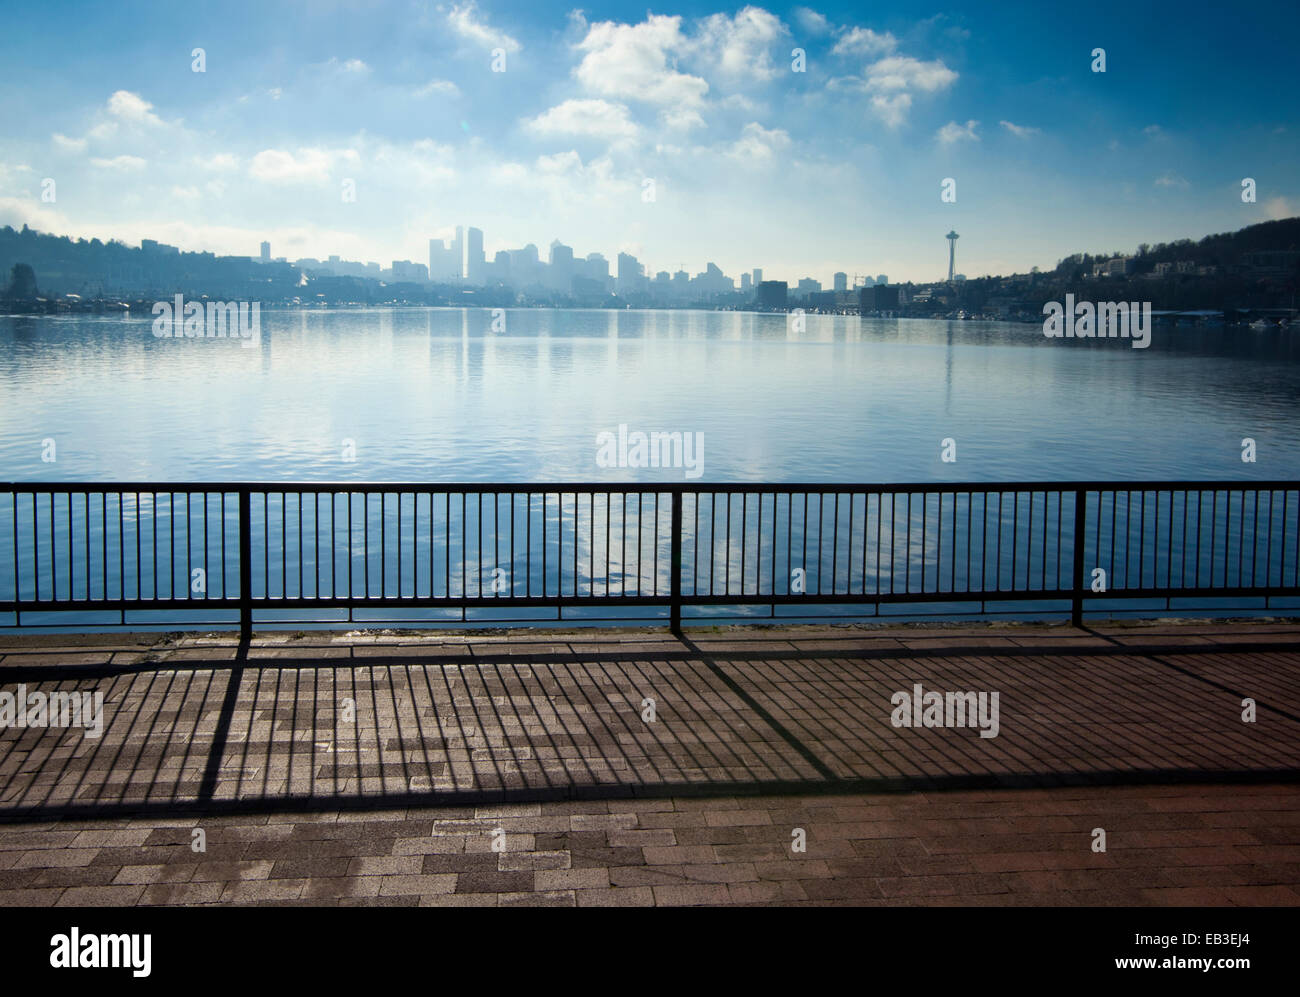 Banister overlooking Seattle city skyline from urban waterfront, Washington, United States - Stock Image